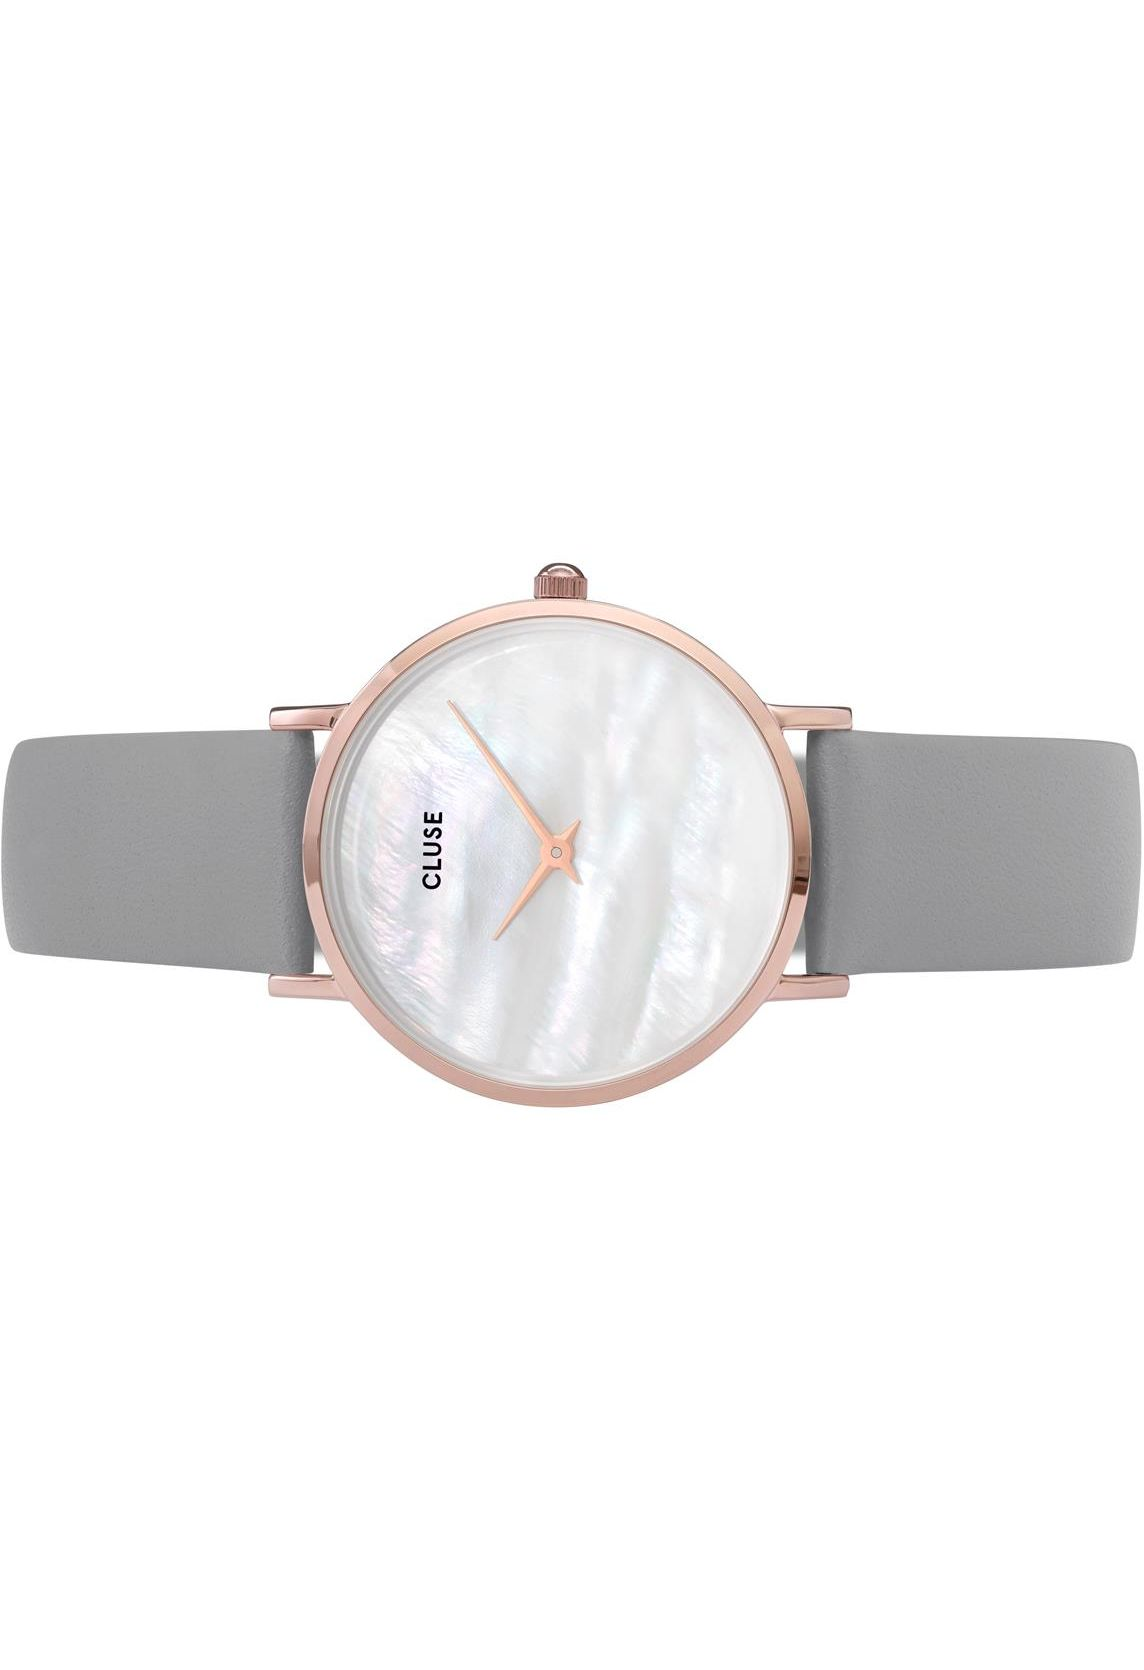 Grey Pearlelephant Montre Perle Gold Rose La White Fl1cTJuK3